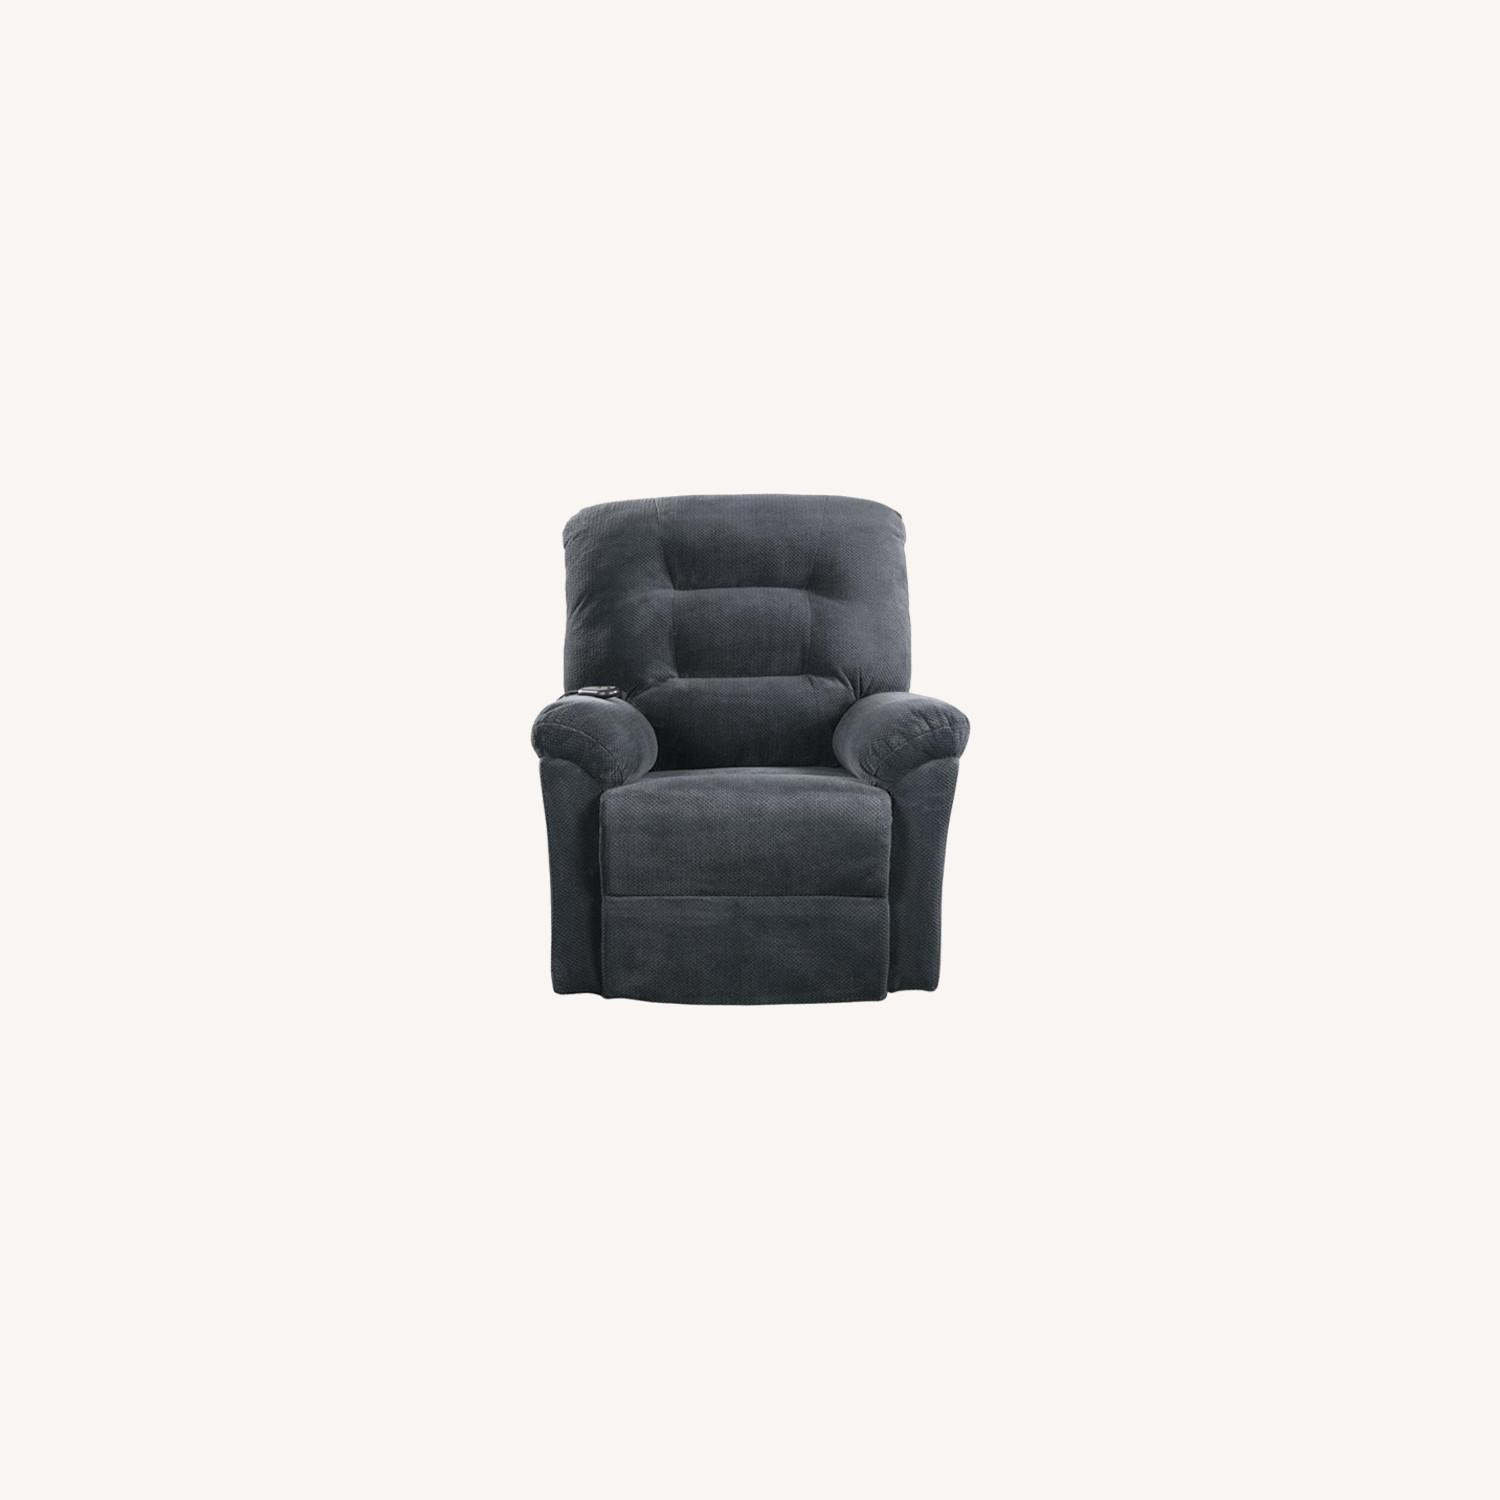 Power Lift Recliner In Charcoal Chenille Fabric - image-9